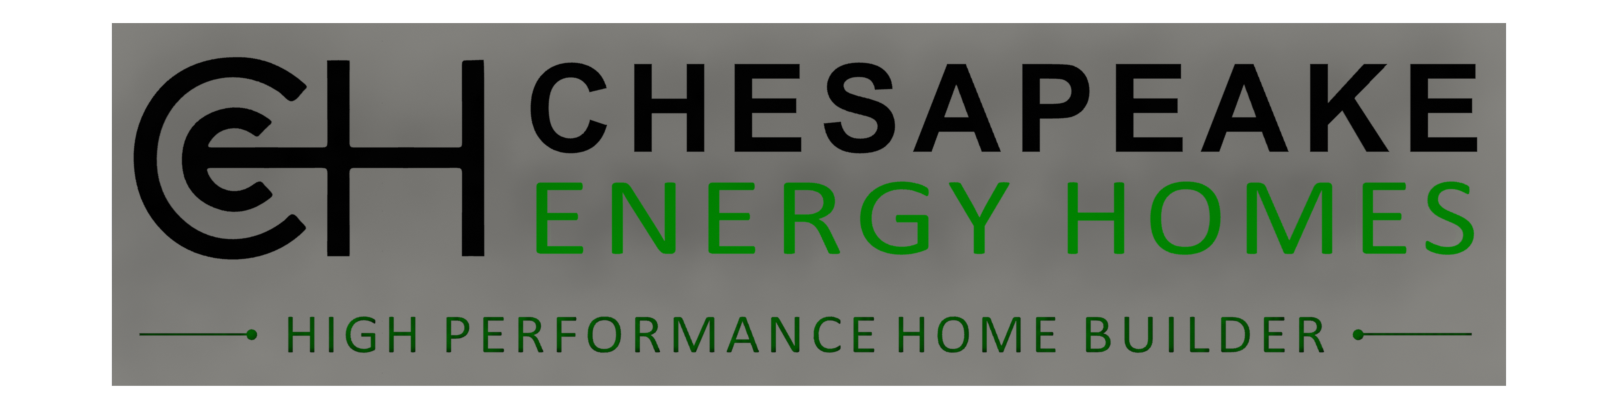 Chesapeake Energy Homes - Front.png